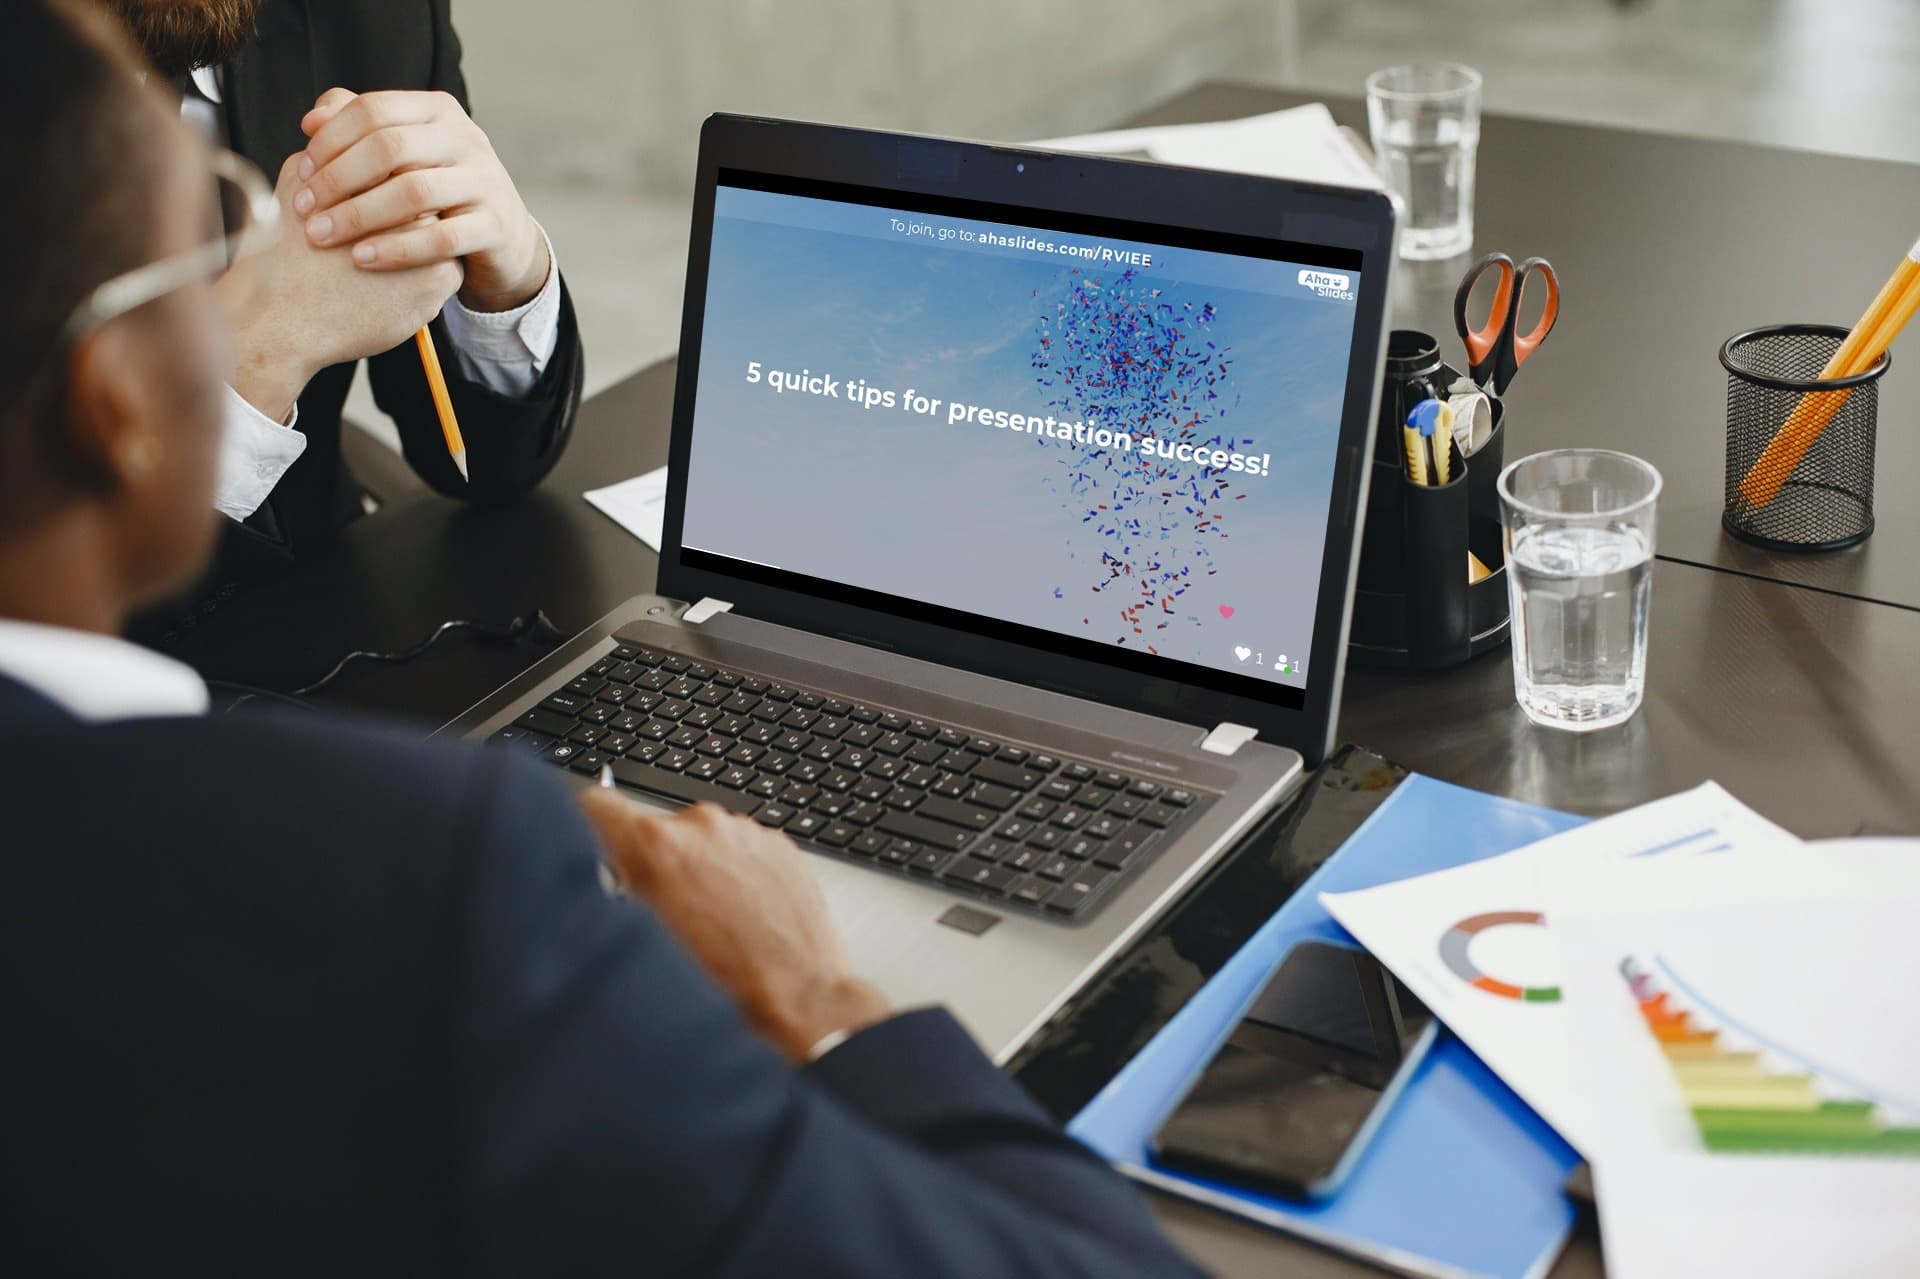 5 quick tips for presentation success